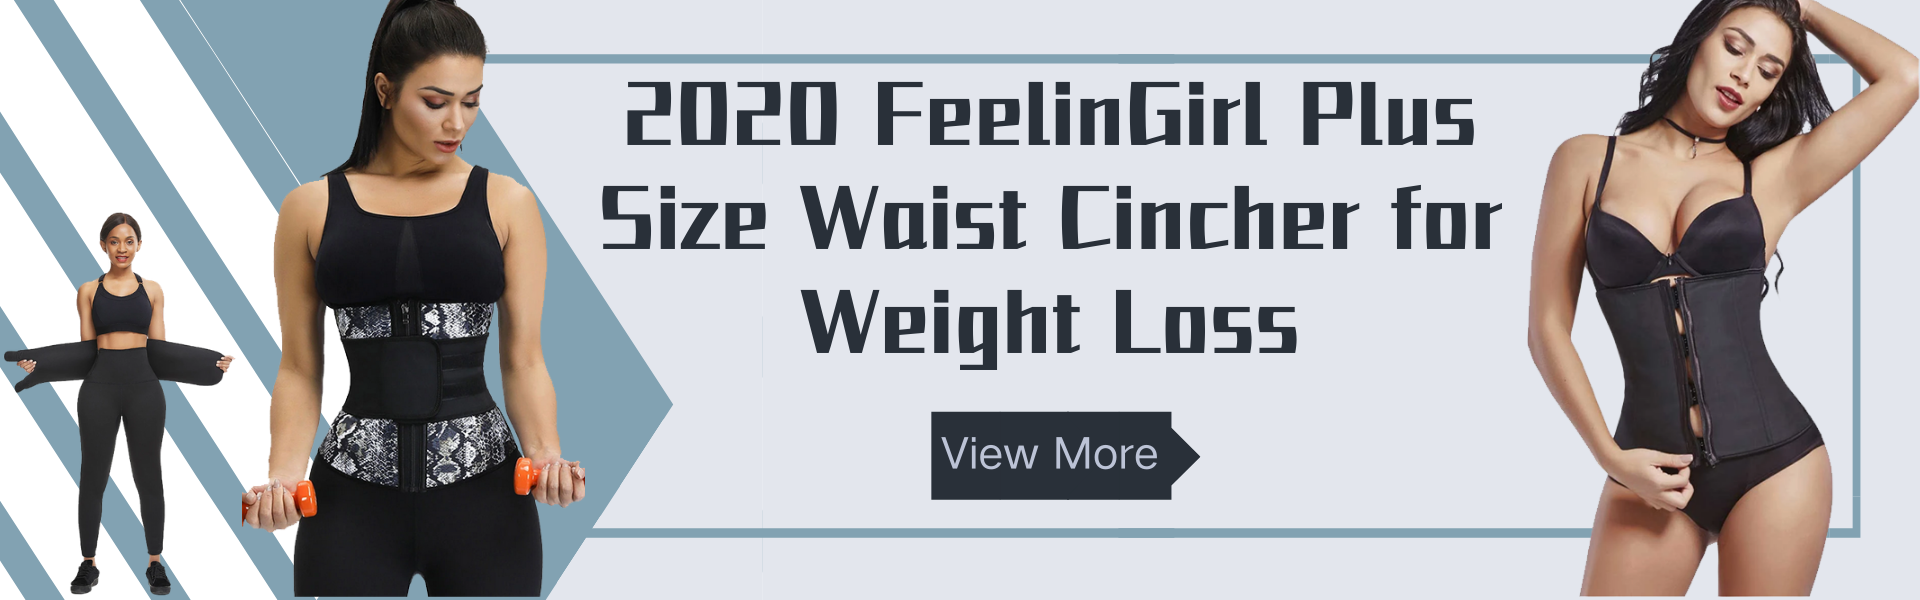 2020 FeelinGirl Plus Size Waist Cincher for Weight Loss